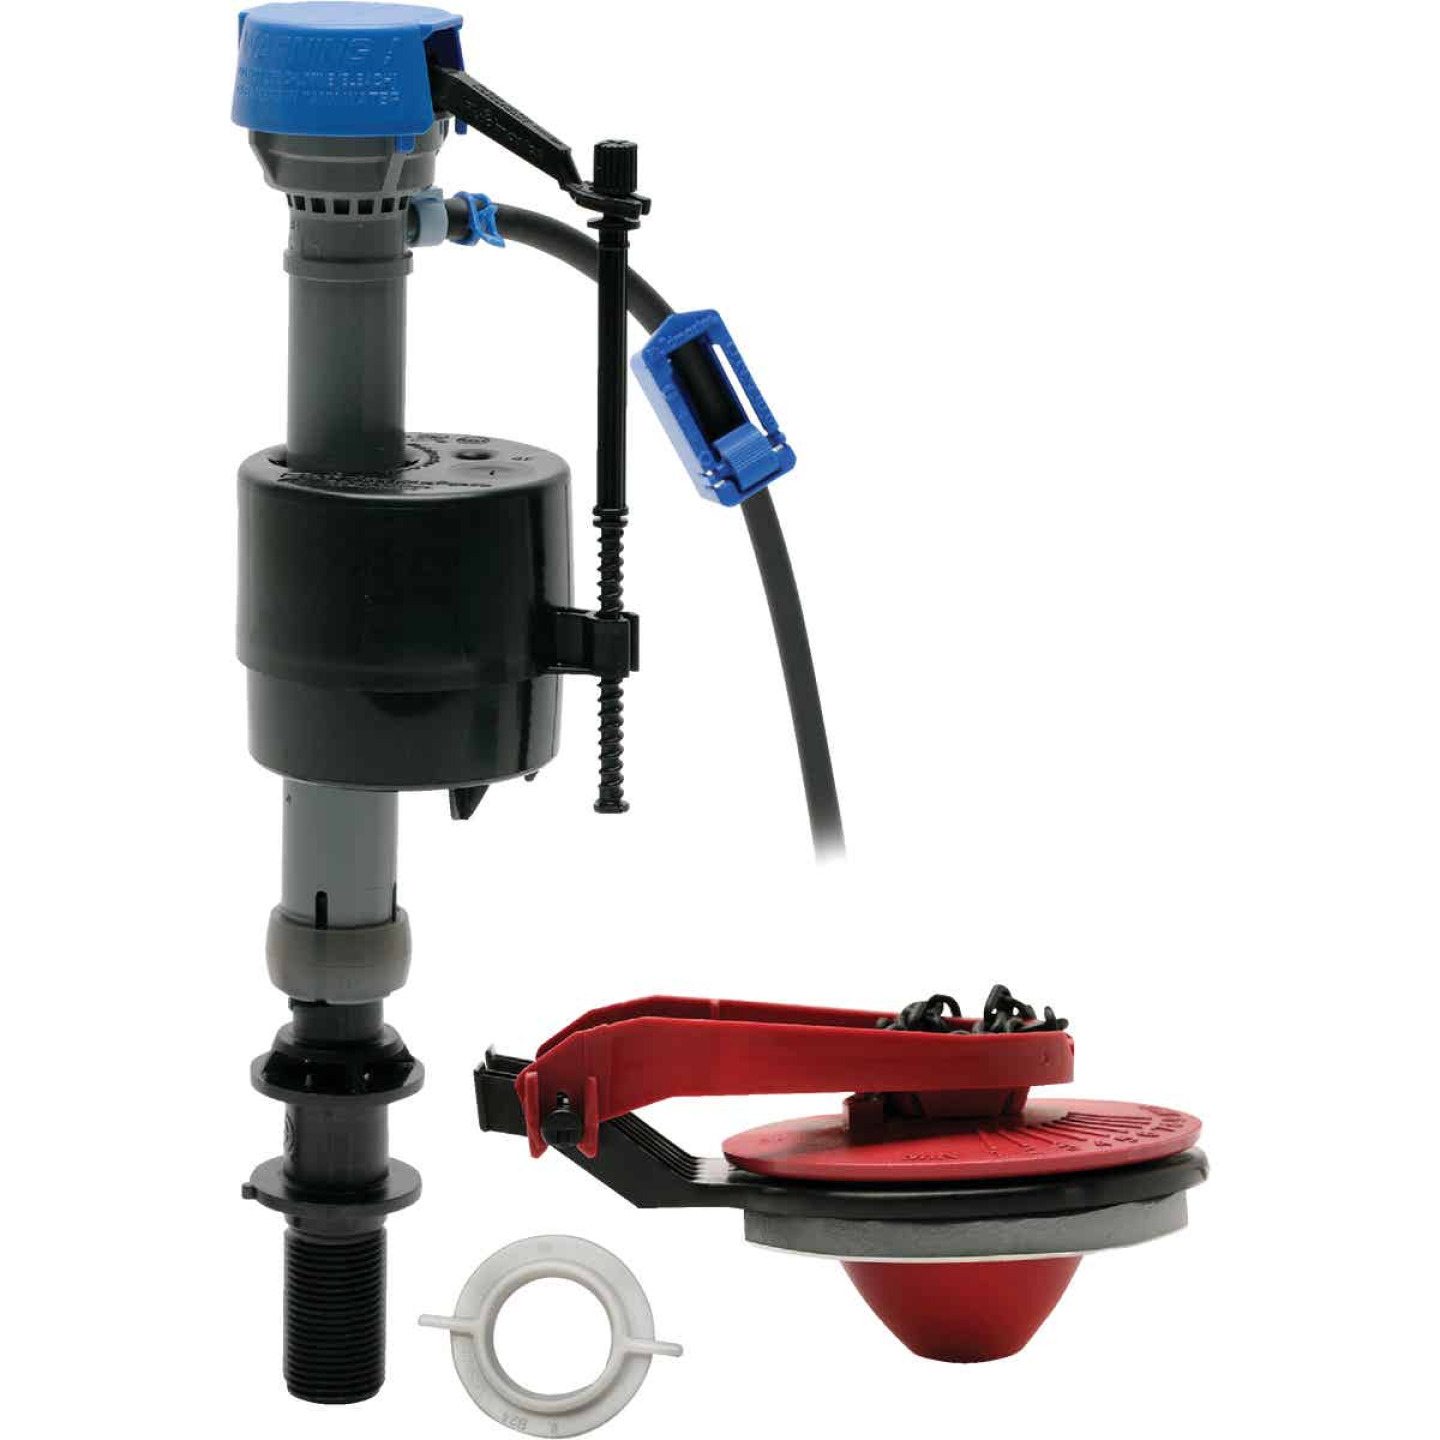 Fluidmaster PerforMAX Fill Valve & 2 In. Flush Valve Toilet Repair Kit Image 1